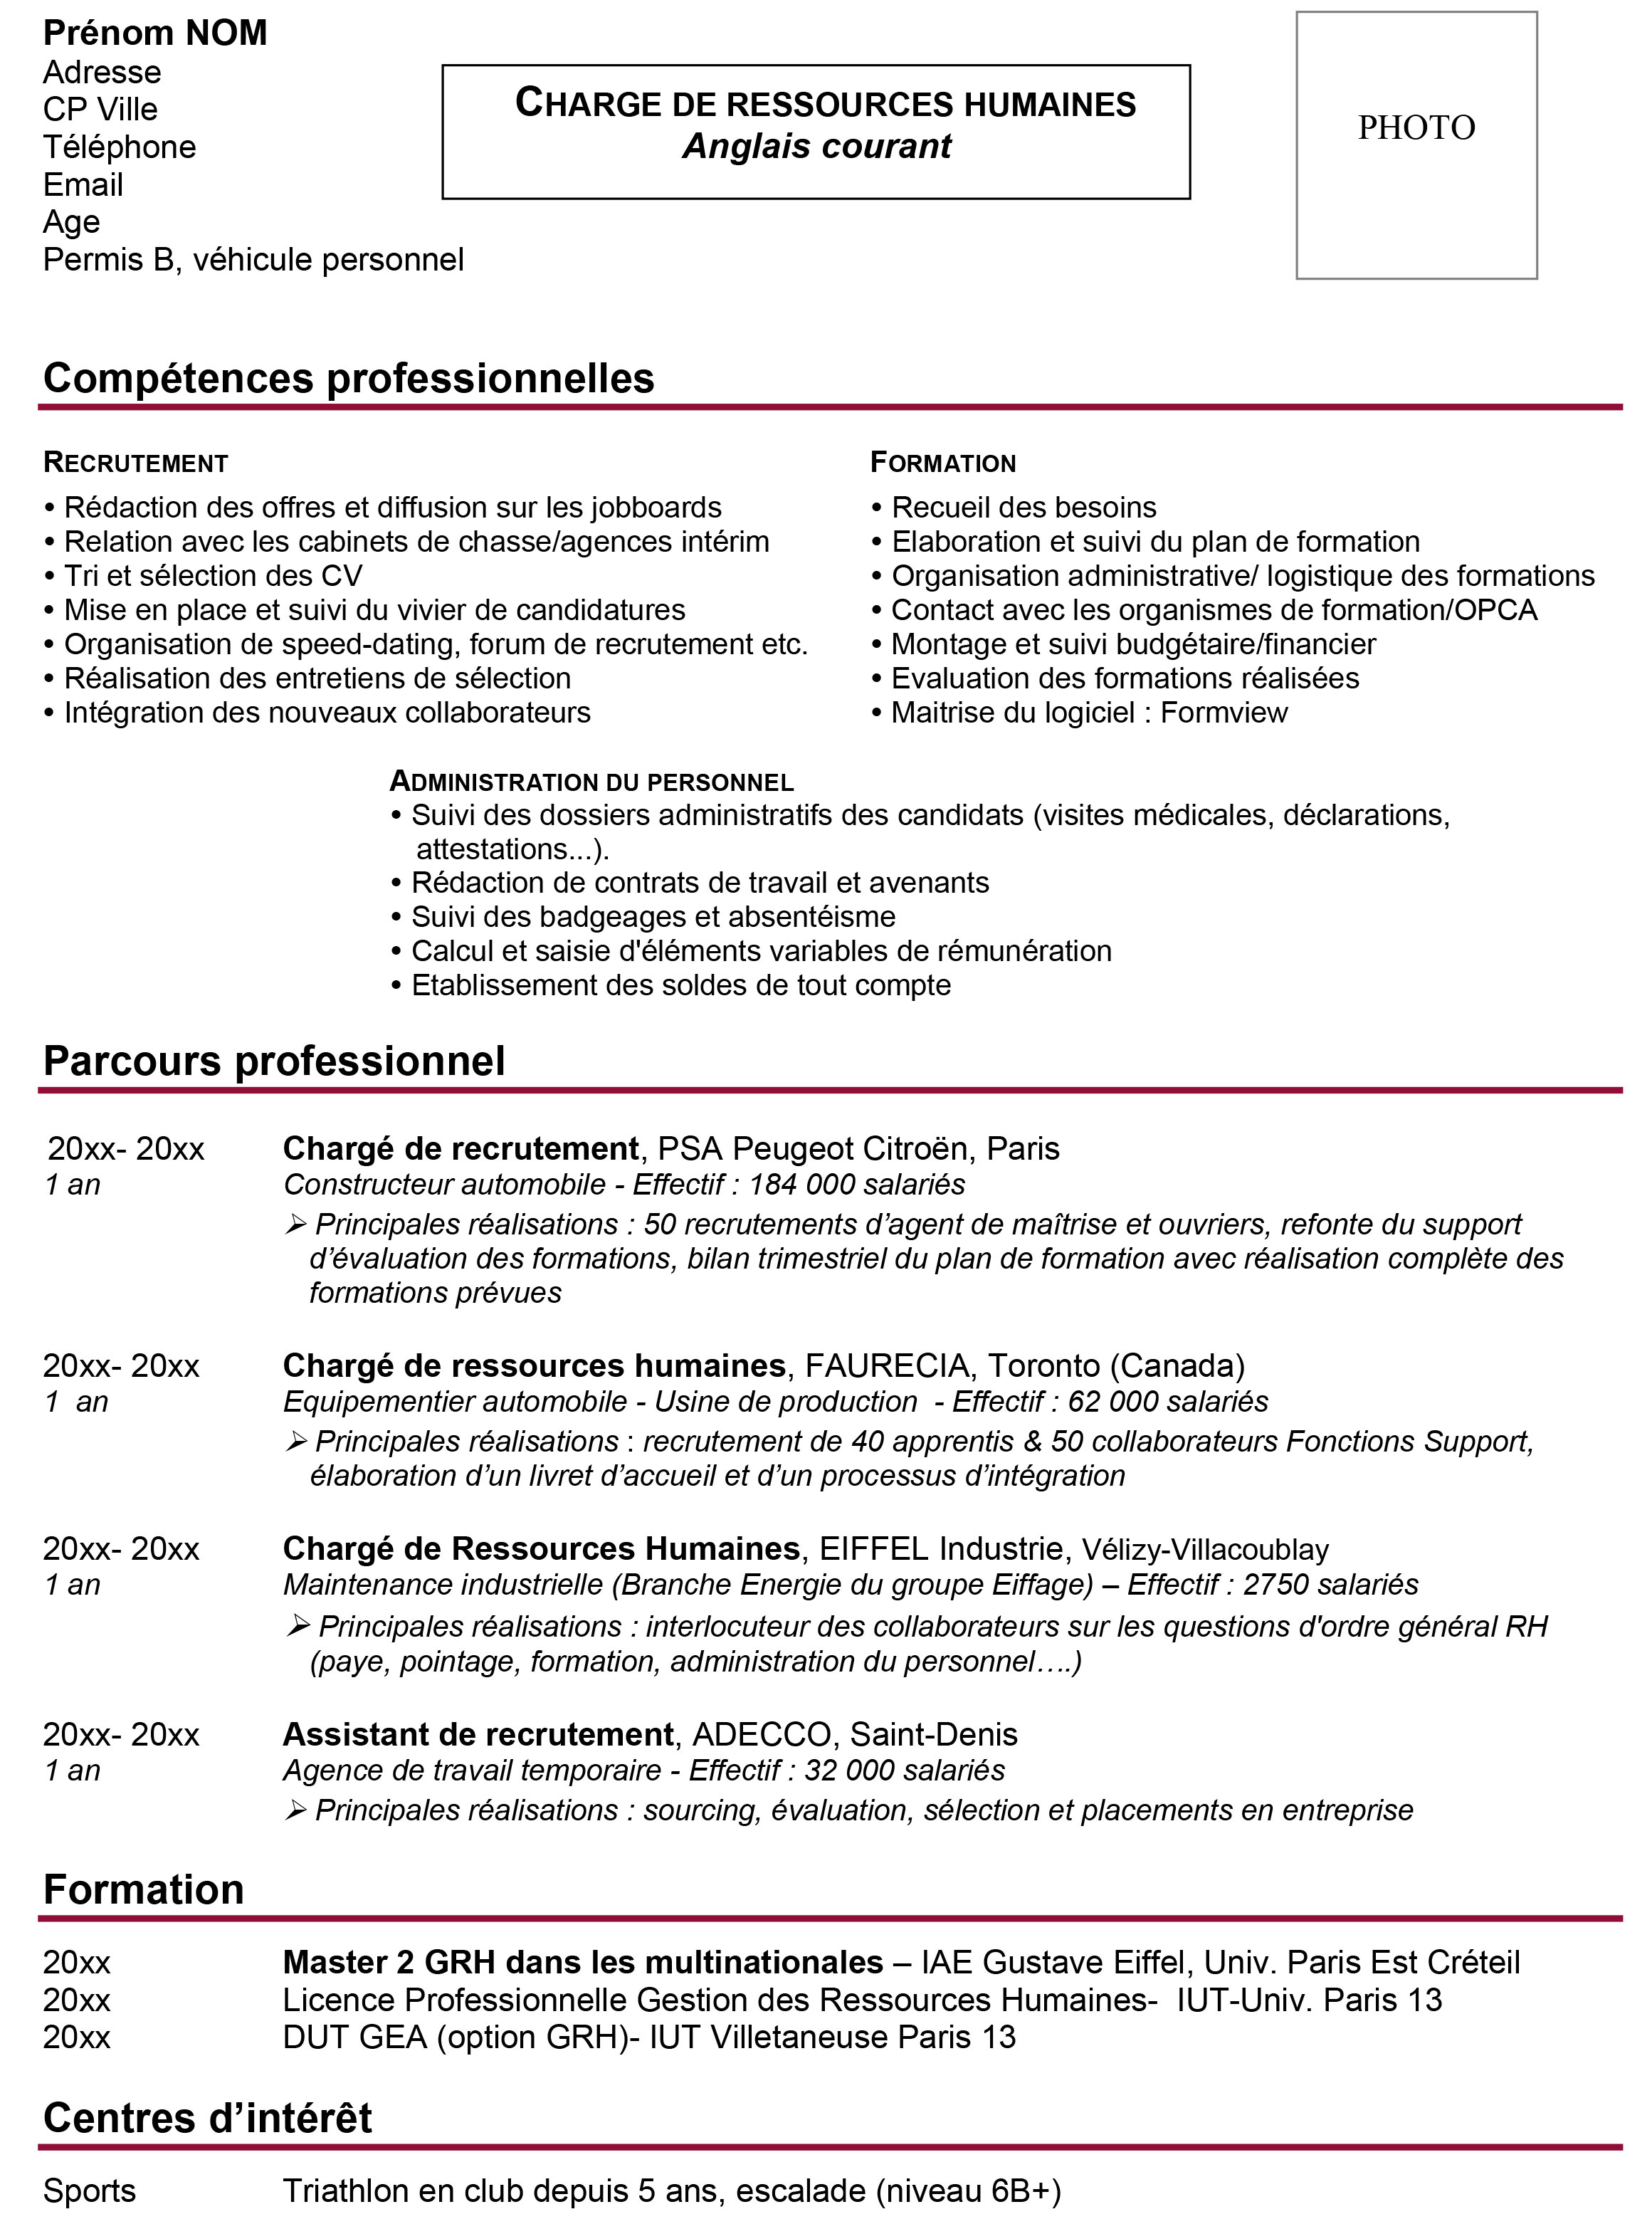 exemple de cv par comp u00e9tences